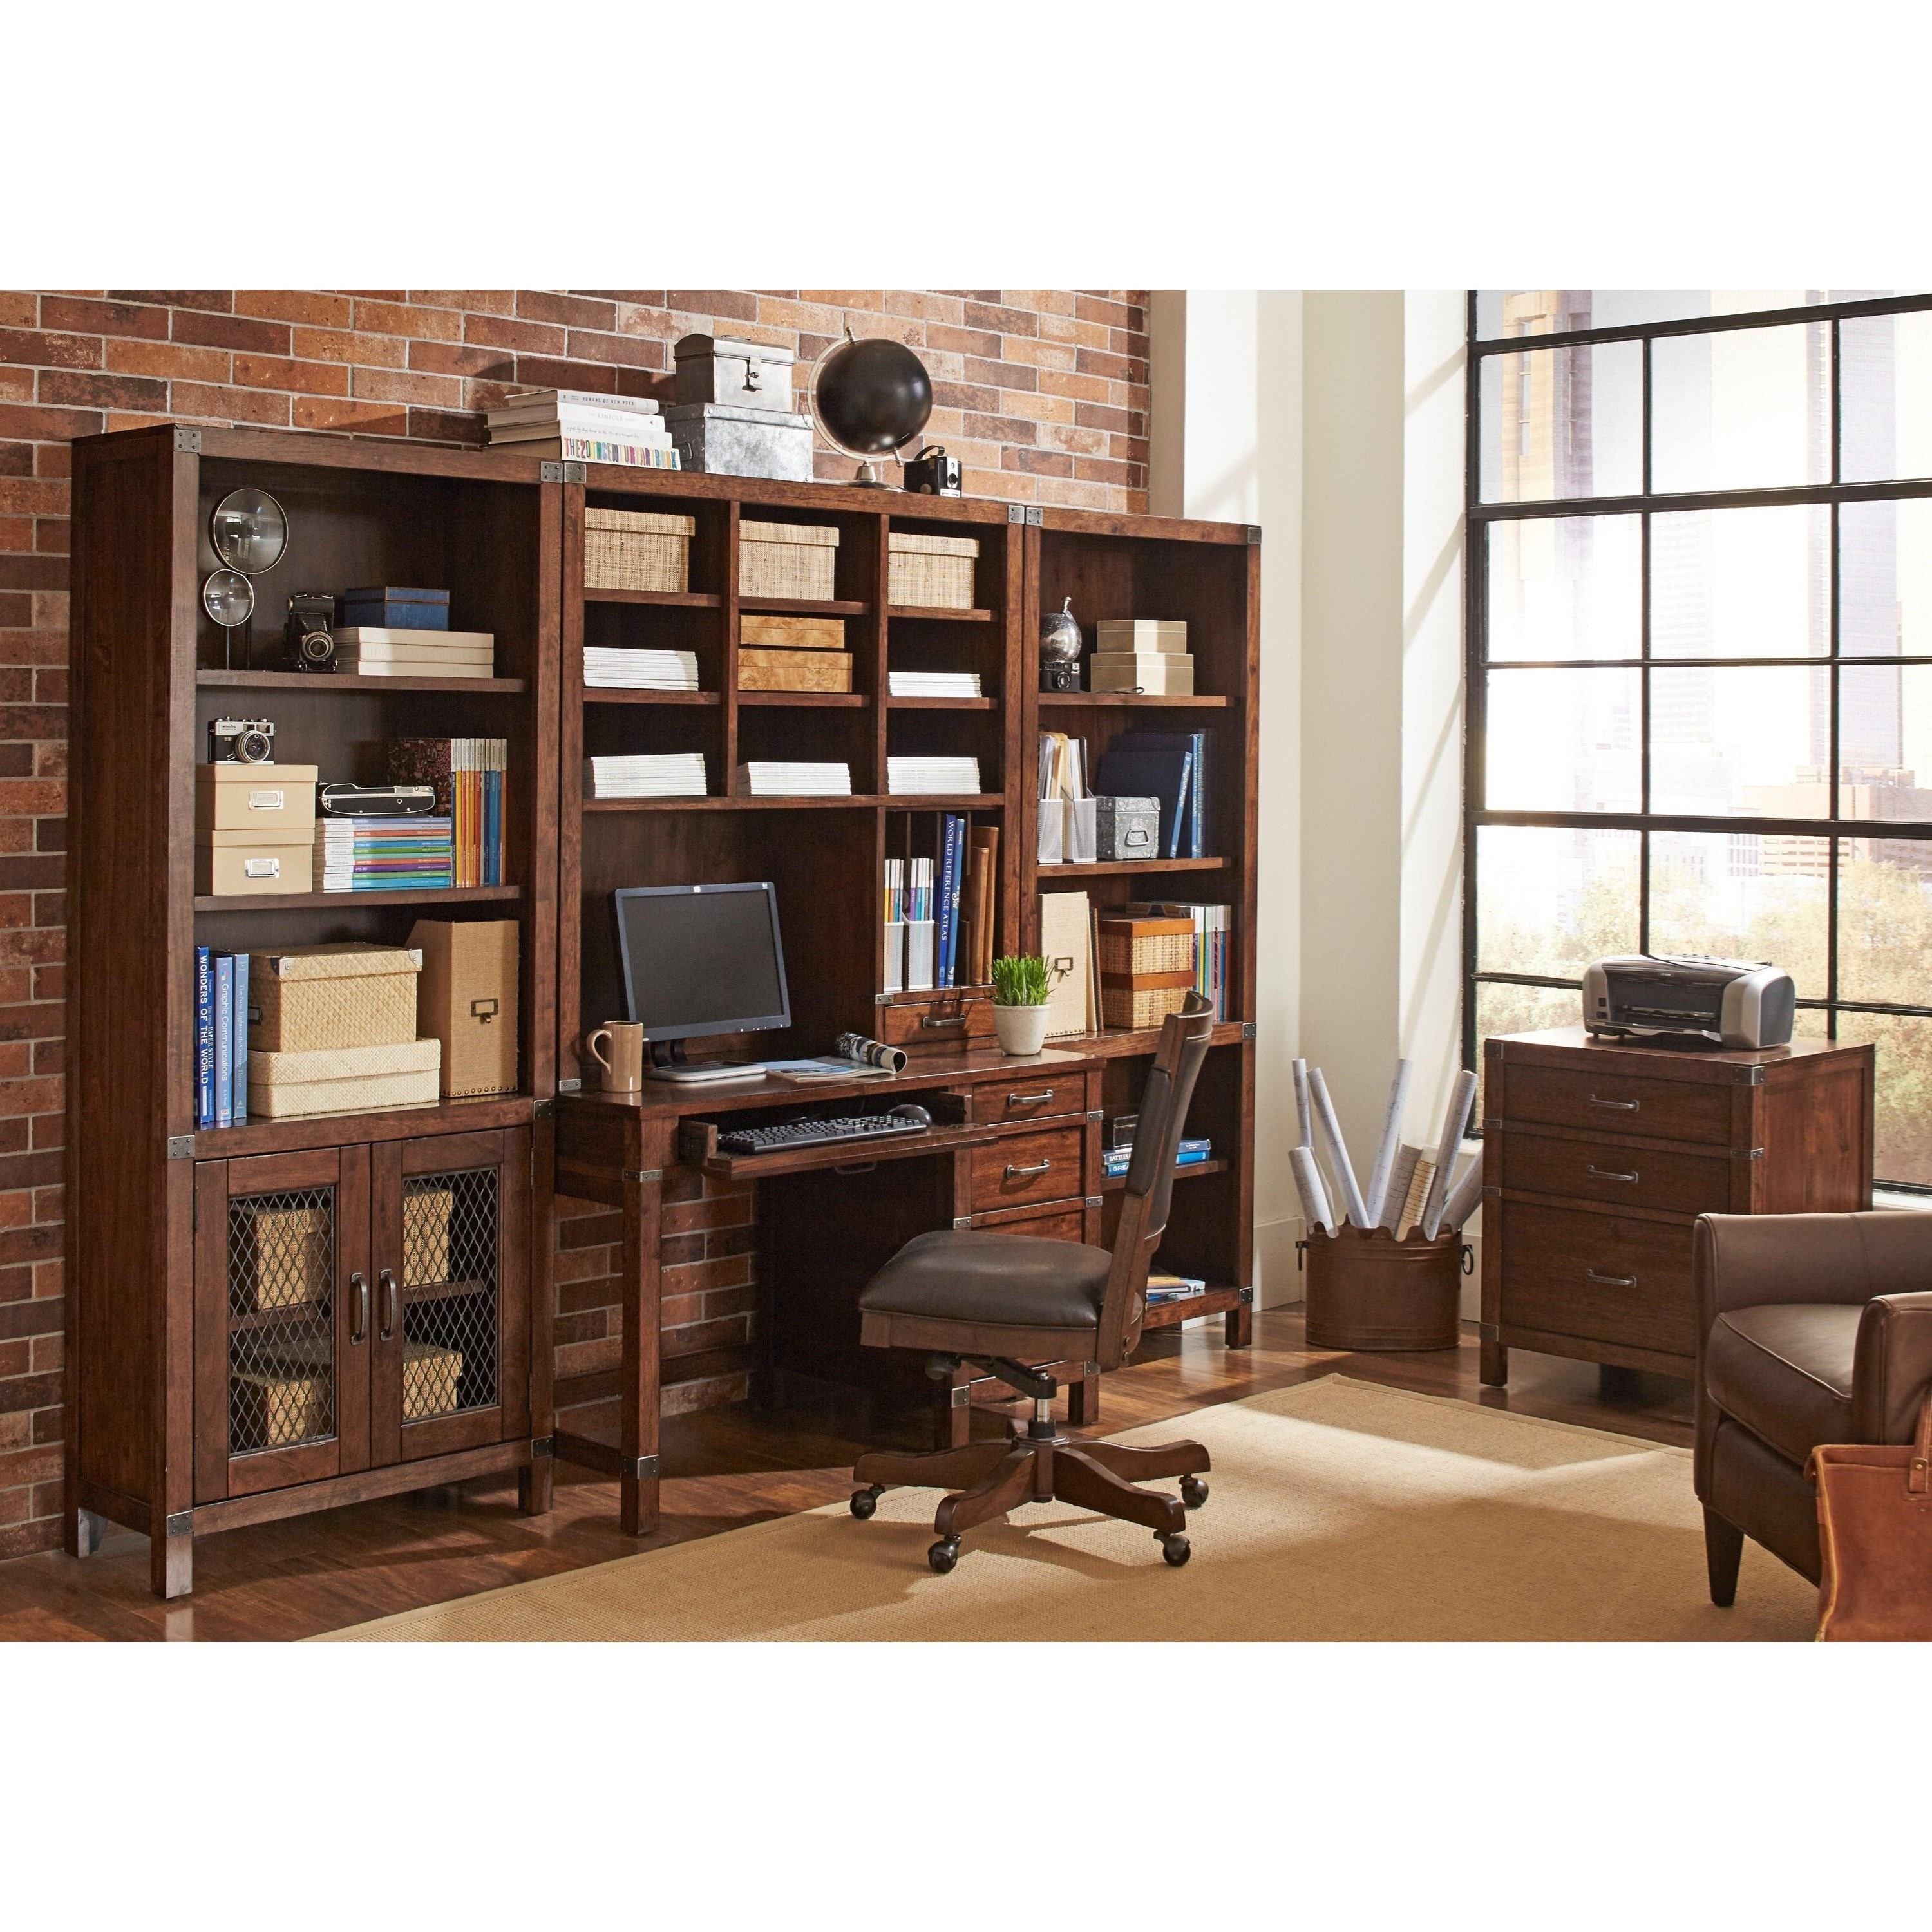 Aspenhome Canfield Icf 332 Bookcase With Intergchangeable